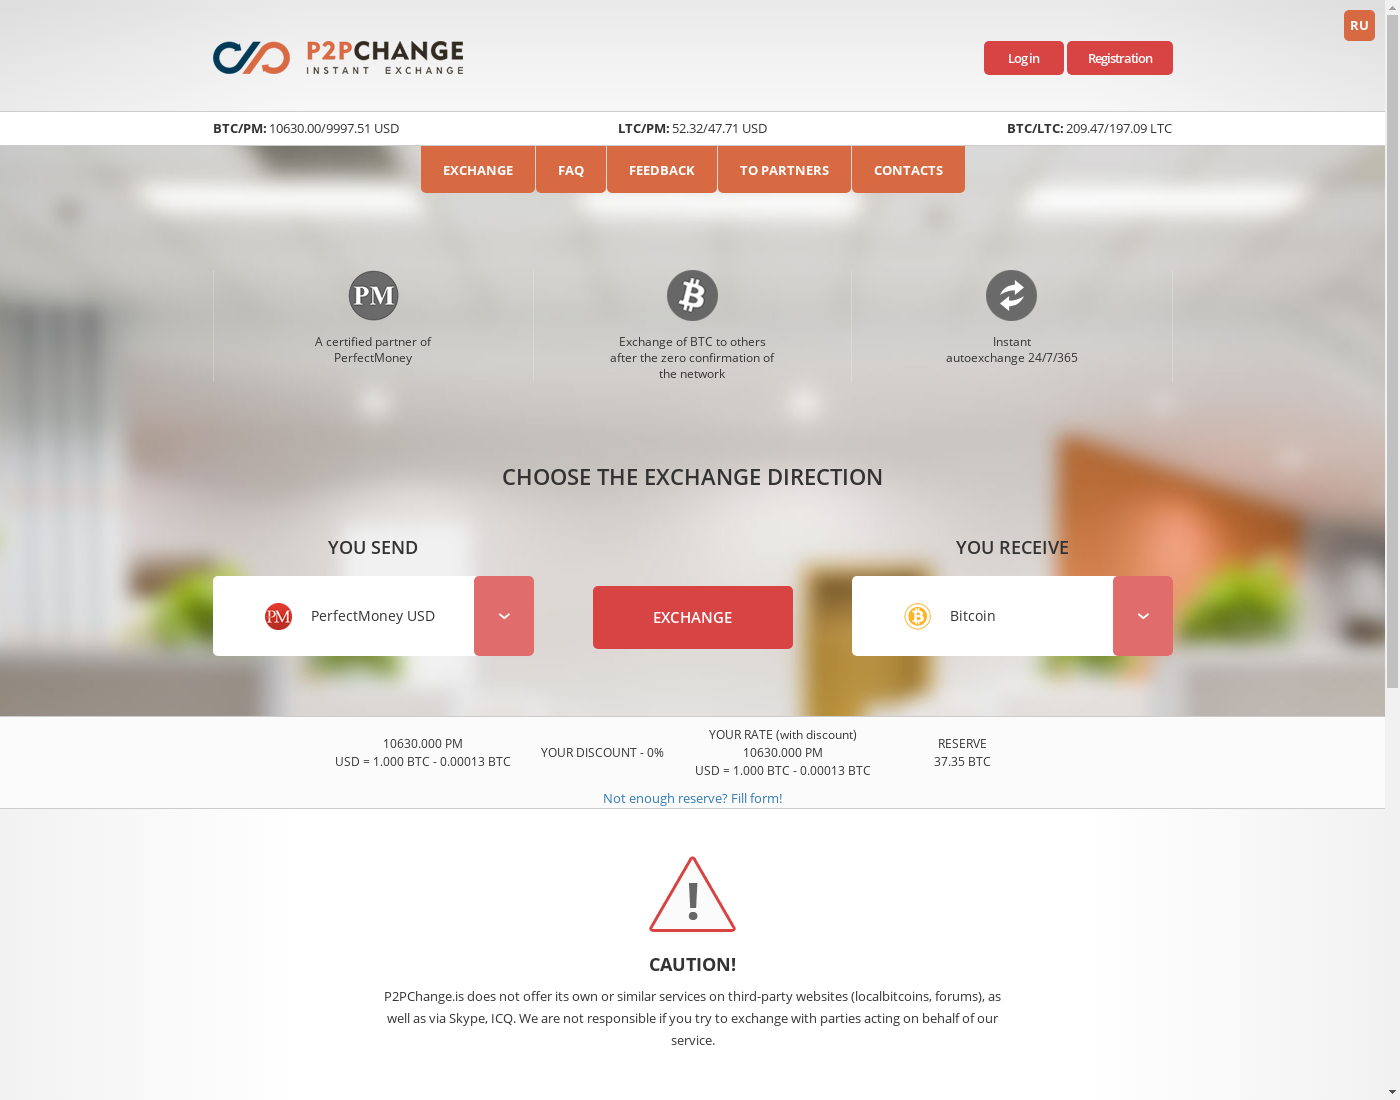 p2pexchange user interface: the home page in English